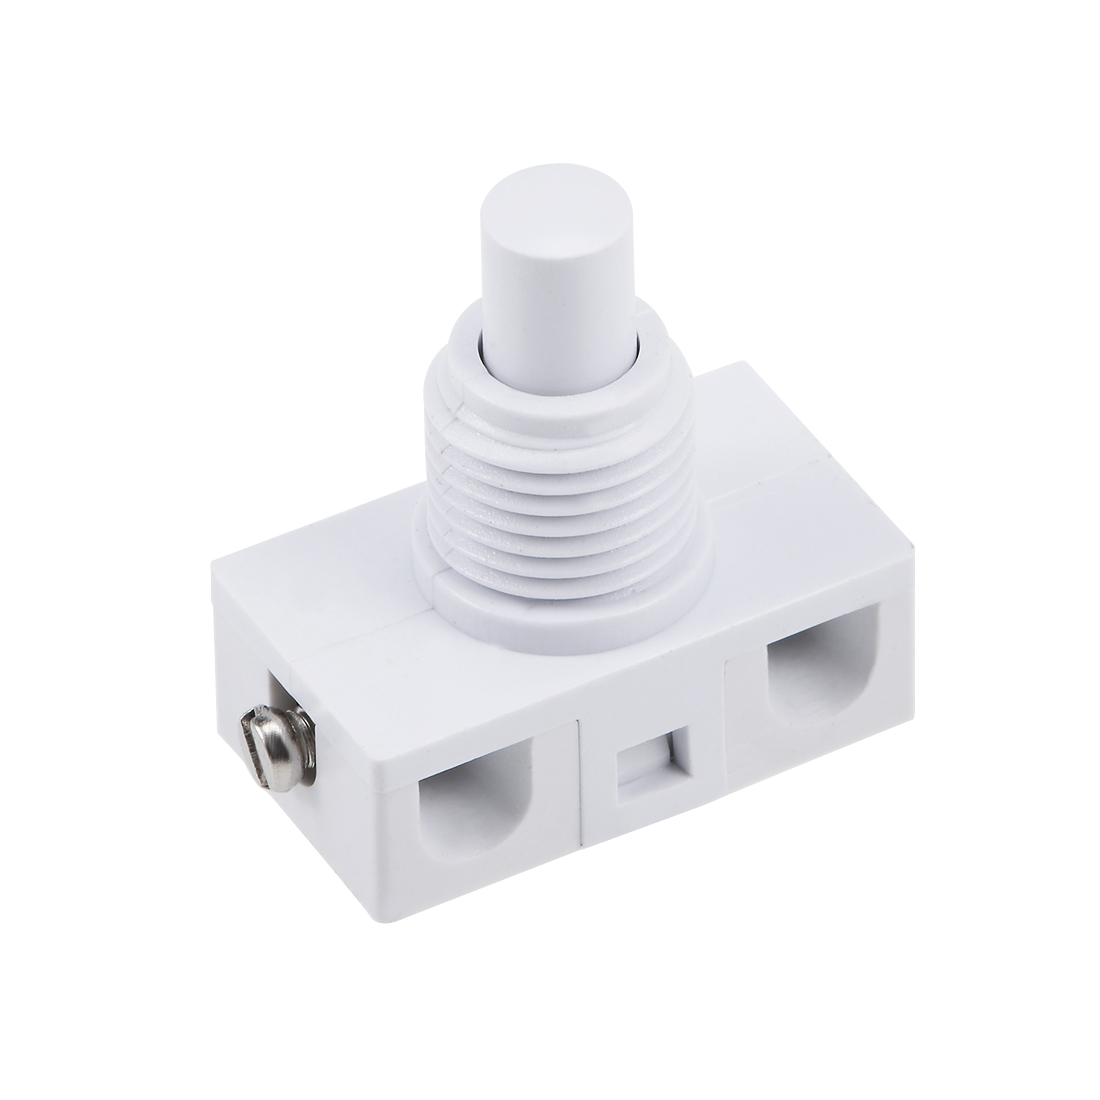 Inline Foot Pedal Push Button Switch, UFO Type Lamp Light Control Latching white